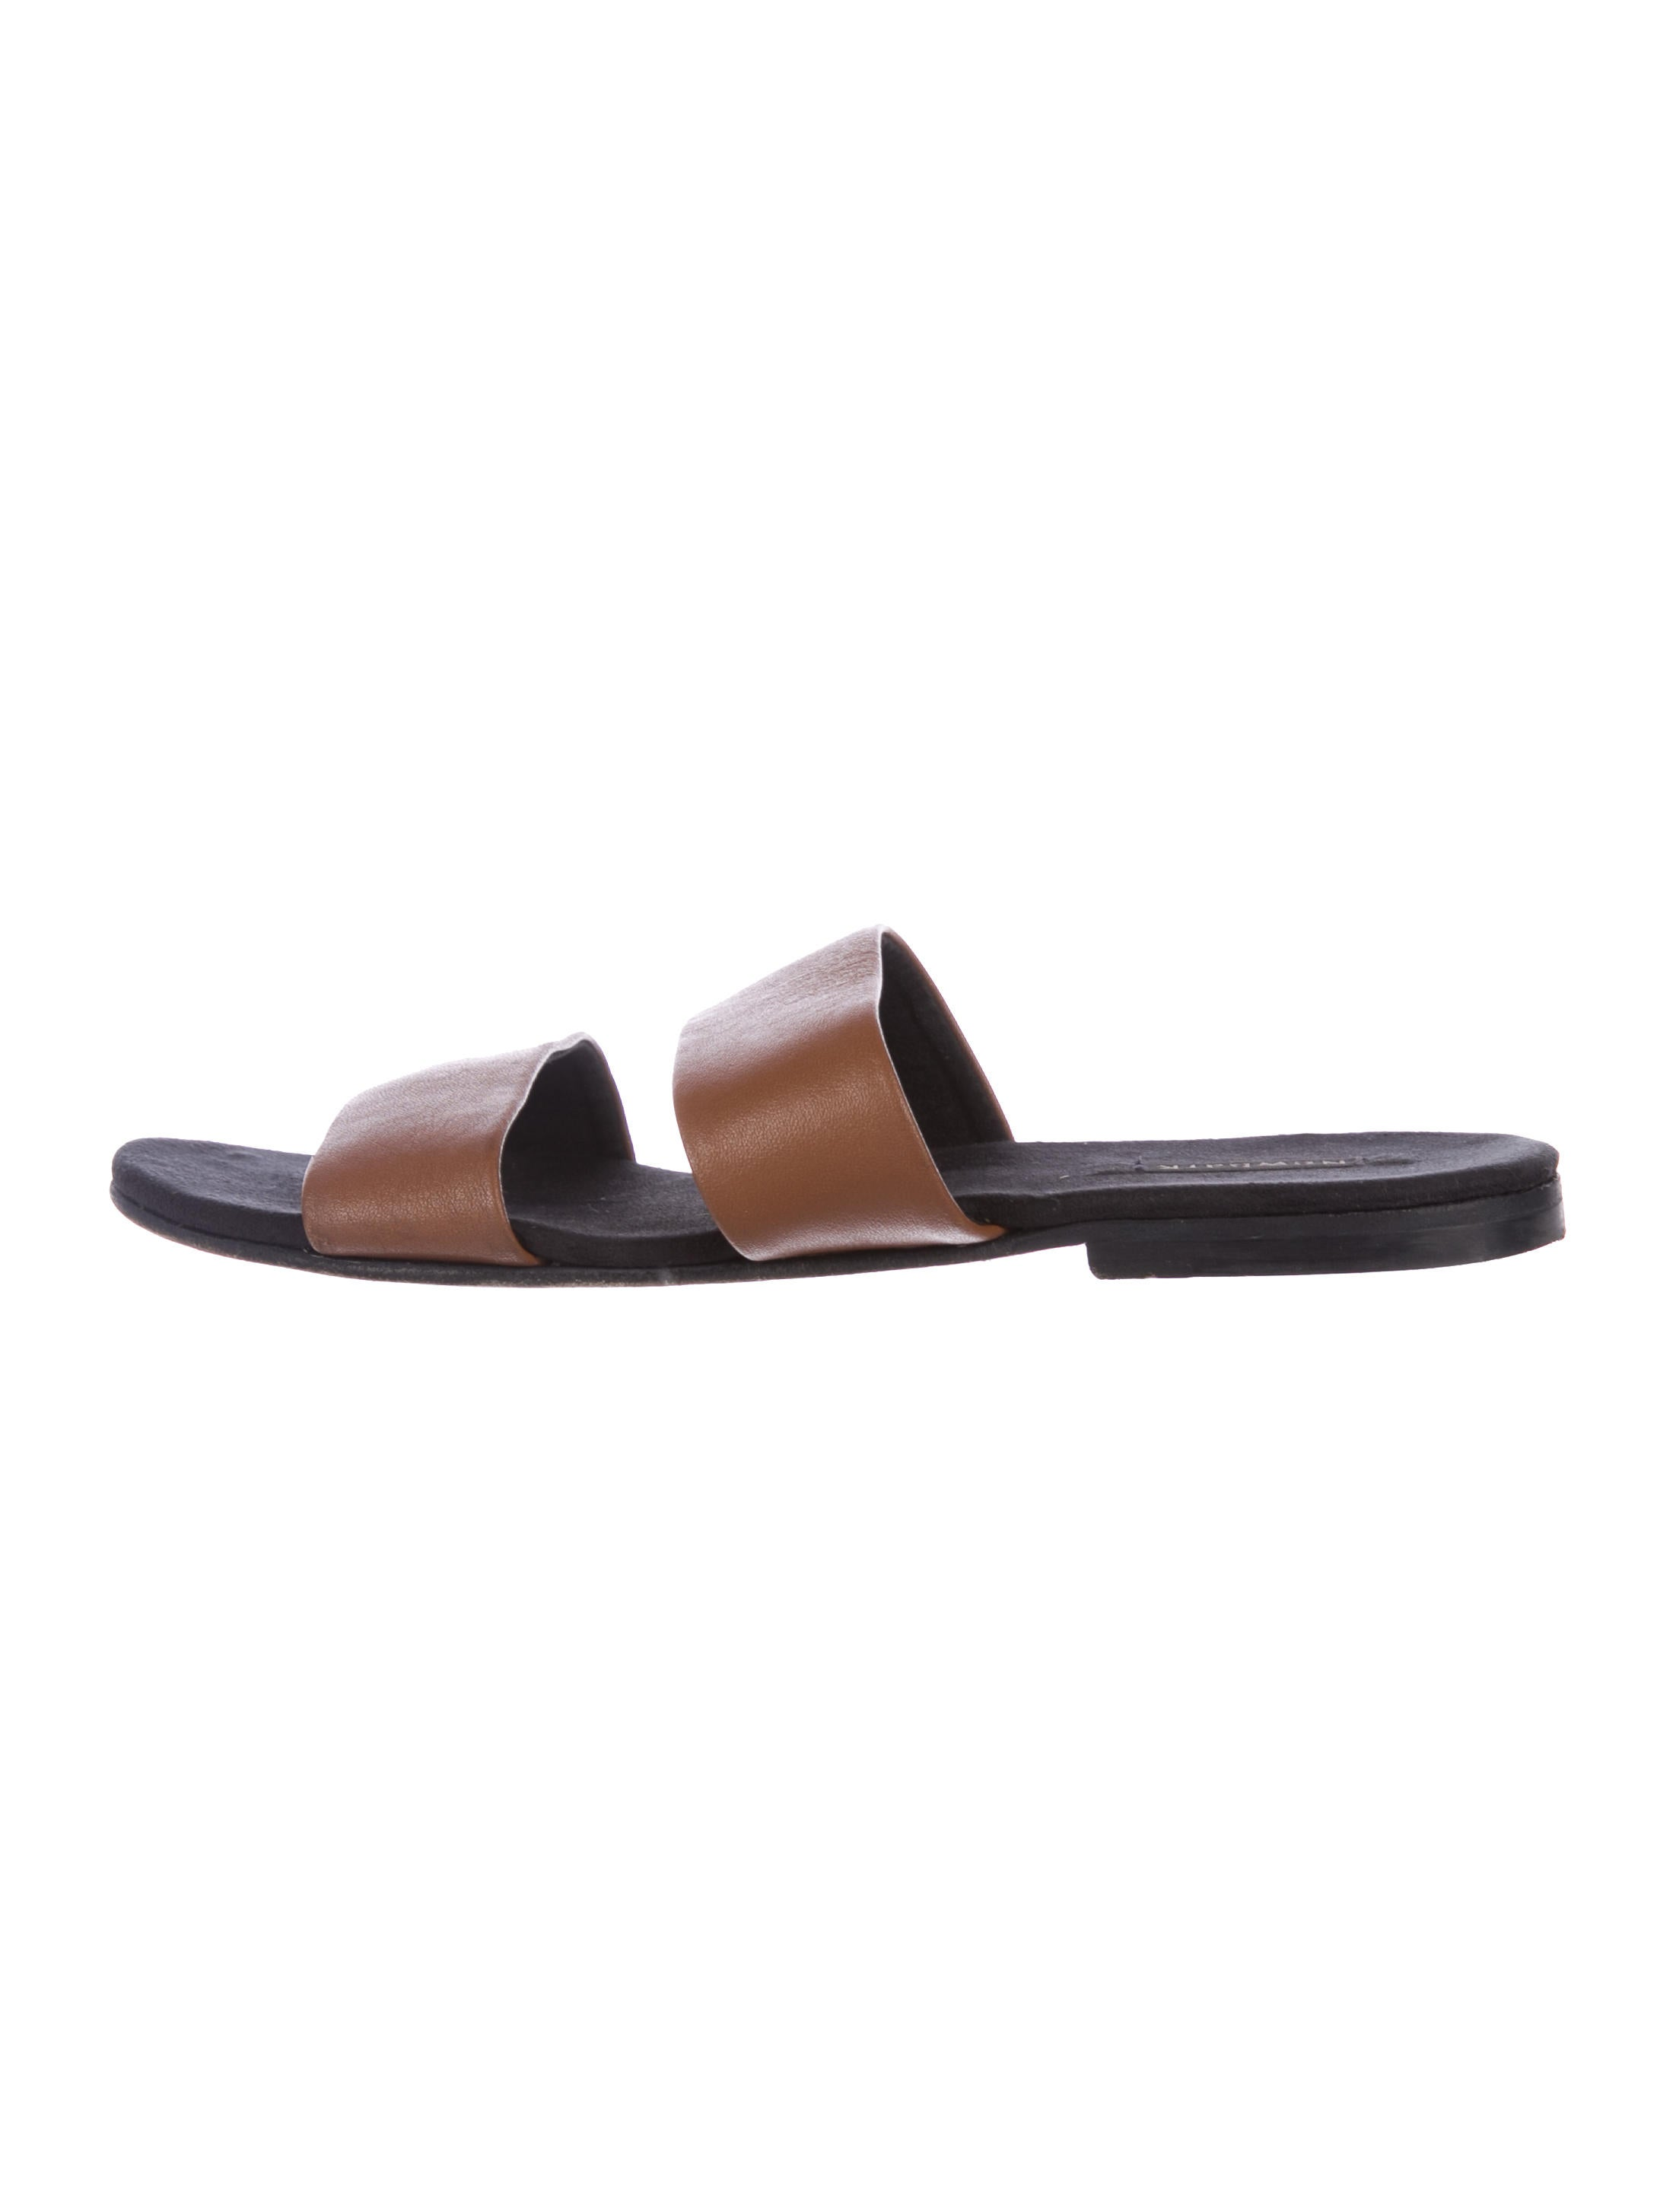 free shipping original NewbarK Leather Slide Sandals prices online sale top quality under $60 cheap online clearance lowest price jbPbf